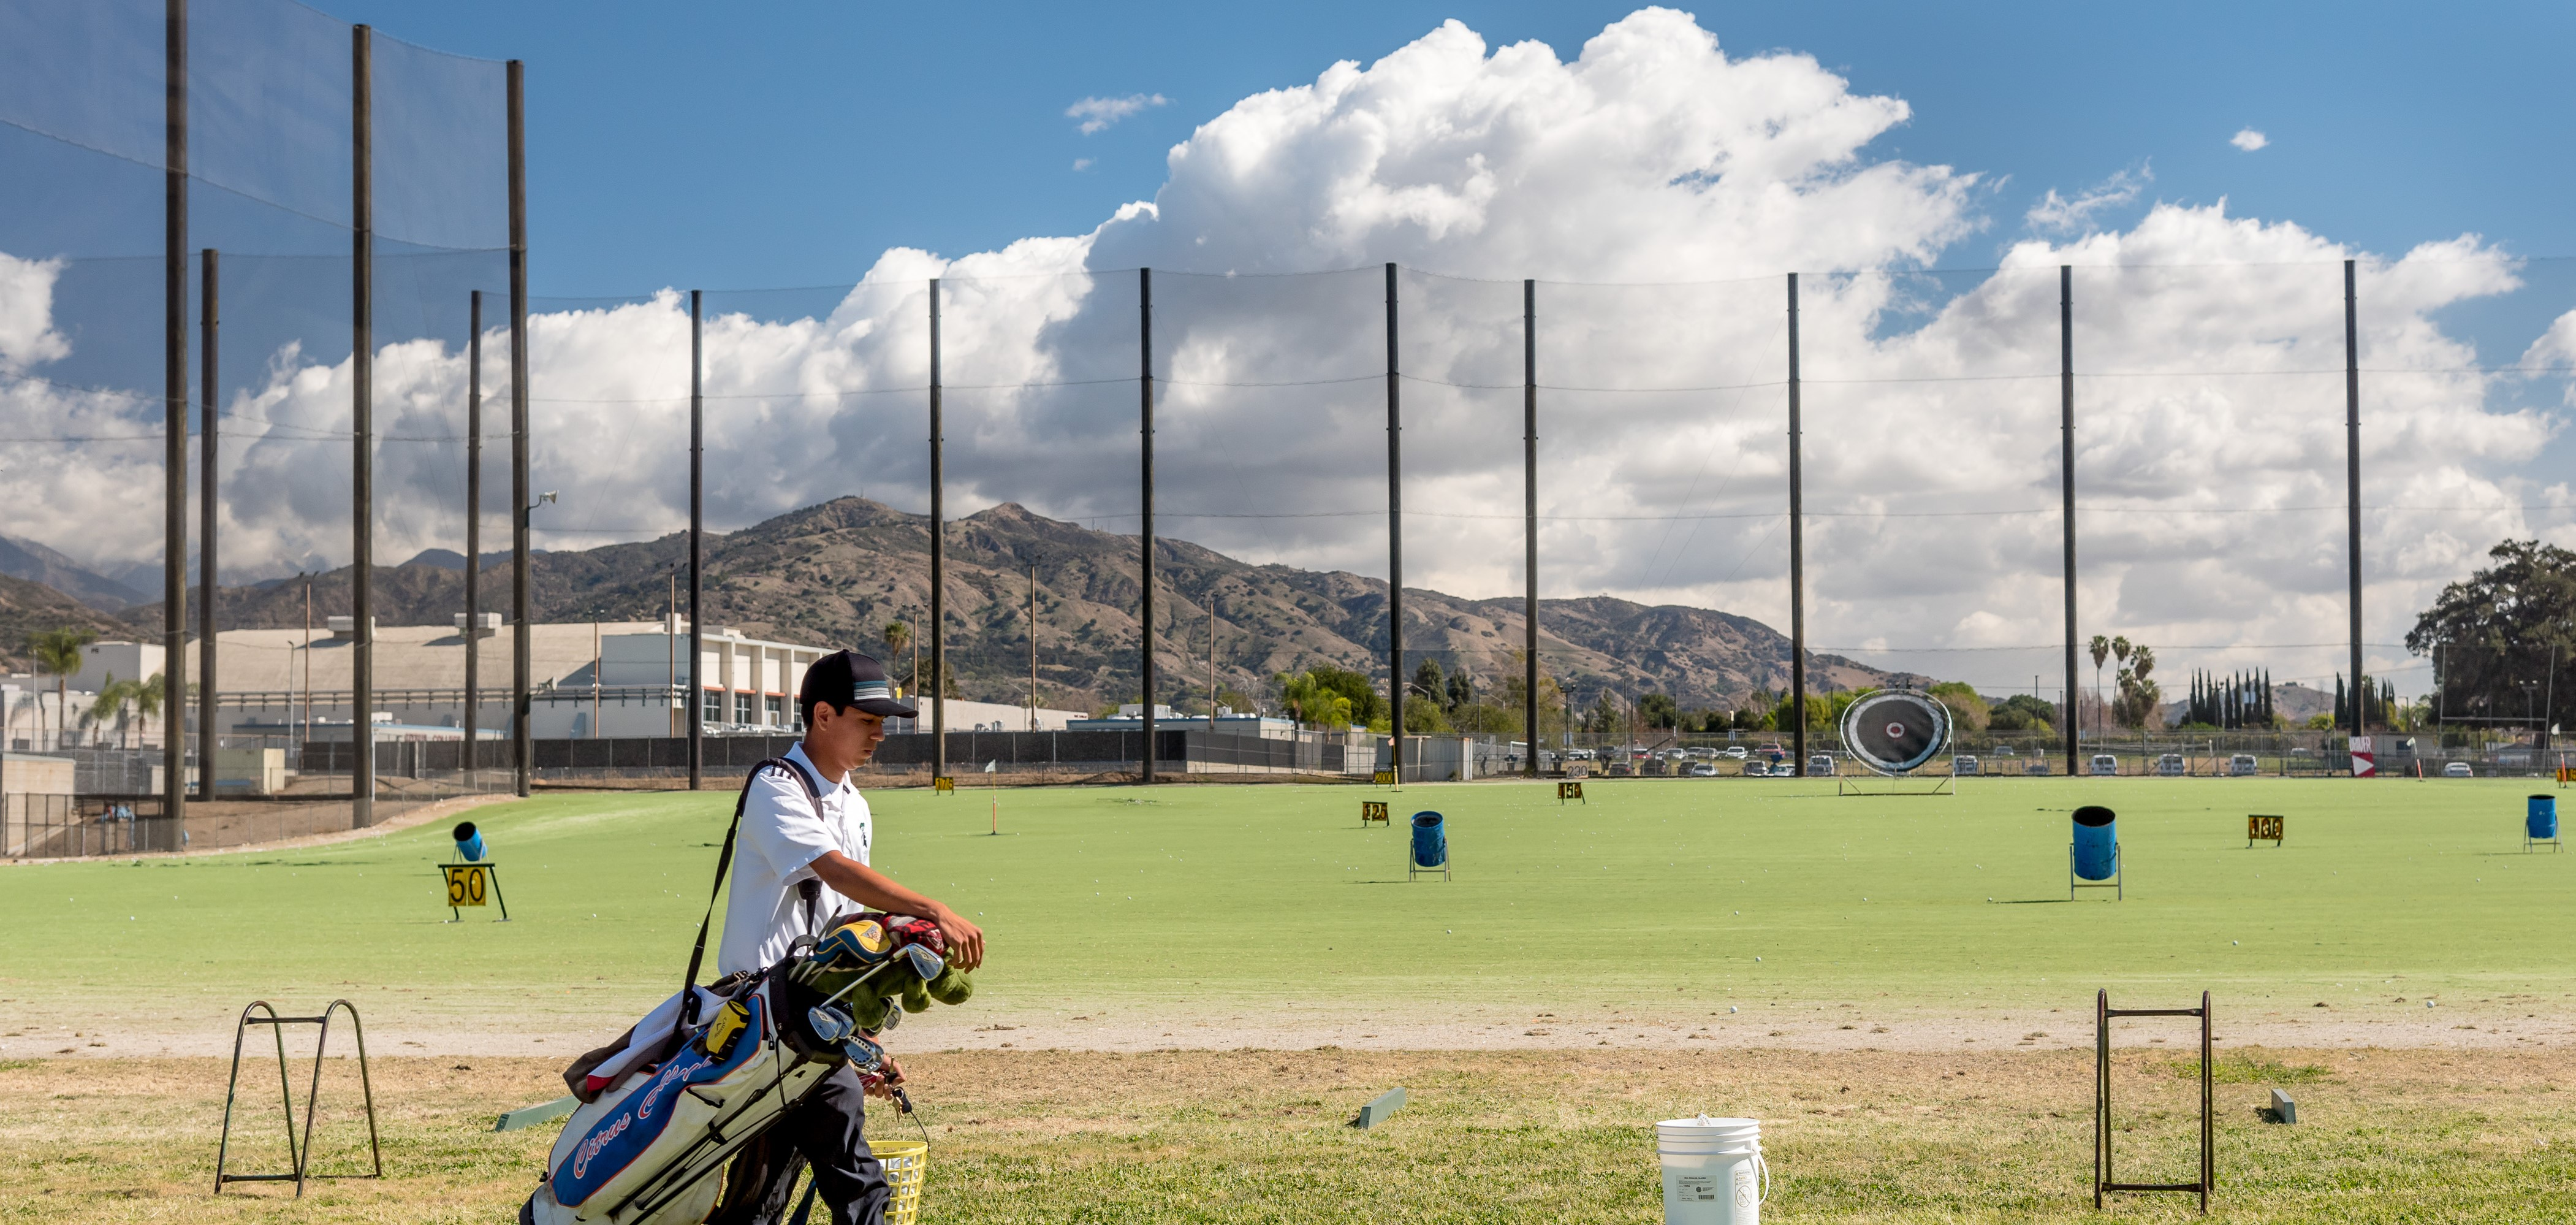 A view of the Range at Citrus with the San Gabriel mountains in the background